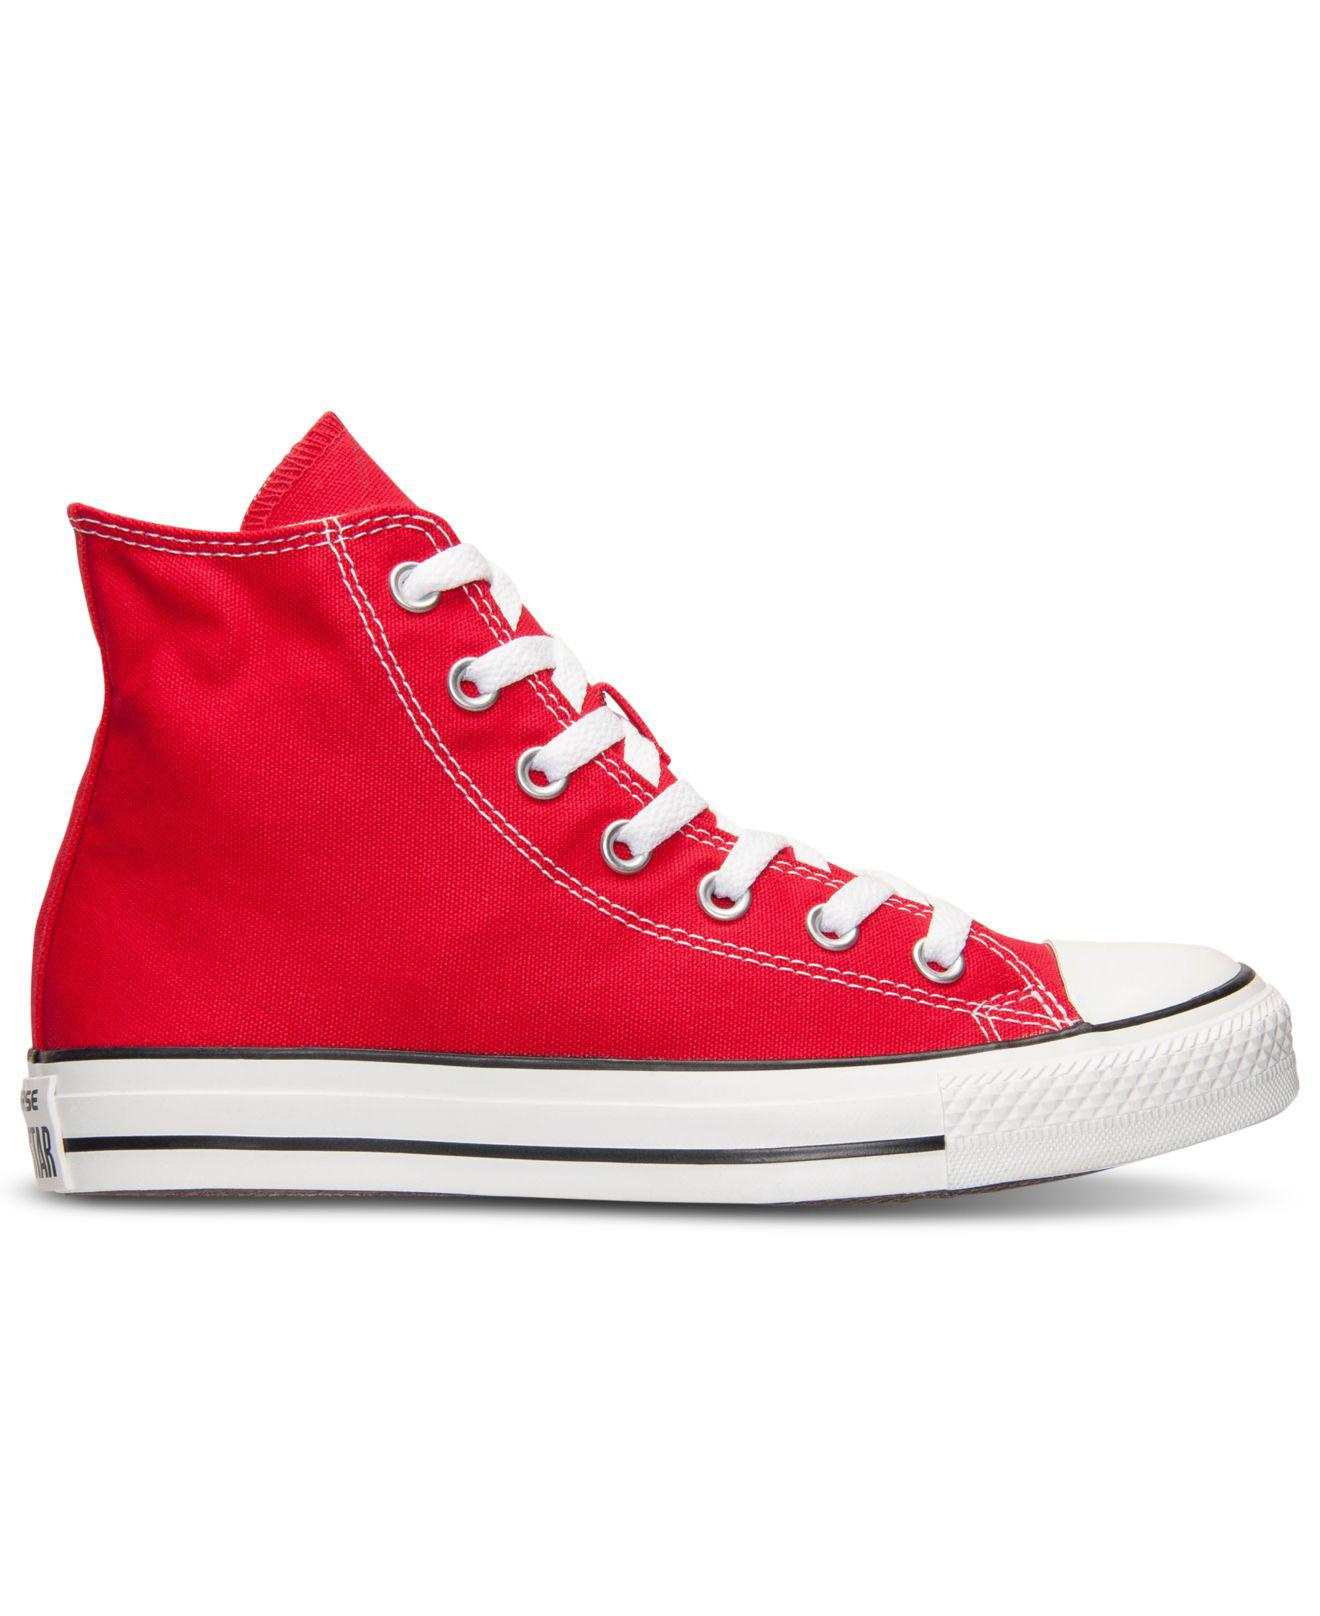 Lyst - Converse Women s Chuck Taylor Hi Top Casual Sneakers From Finish  Line in Red 1ca6a222c